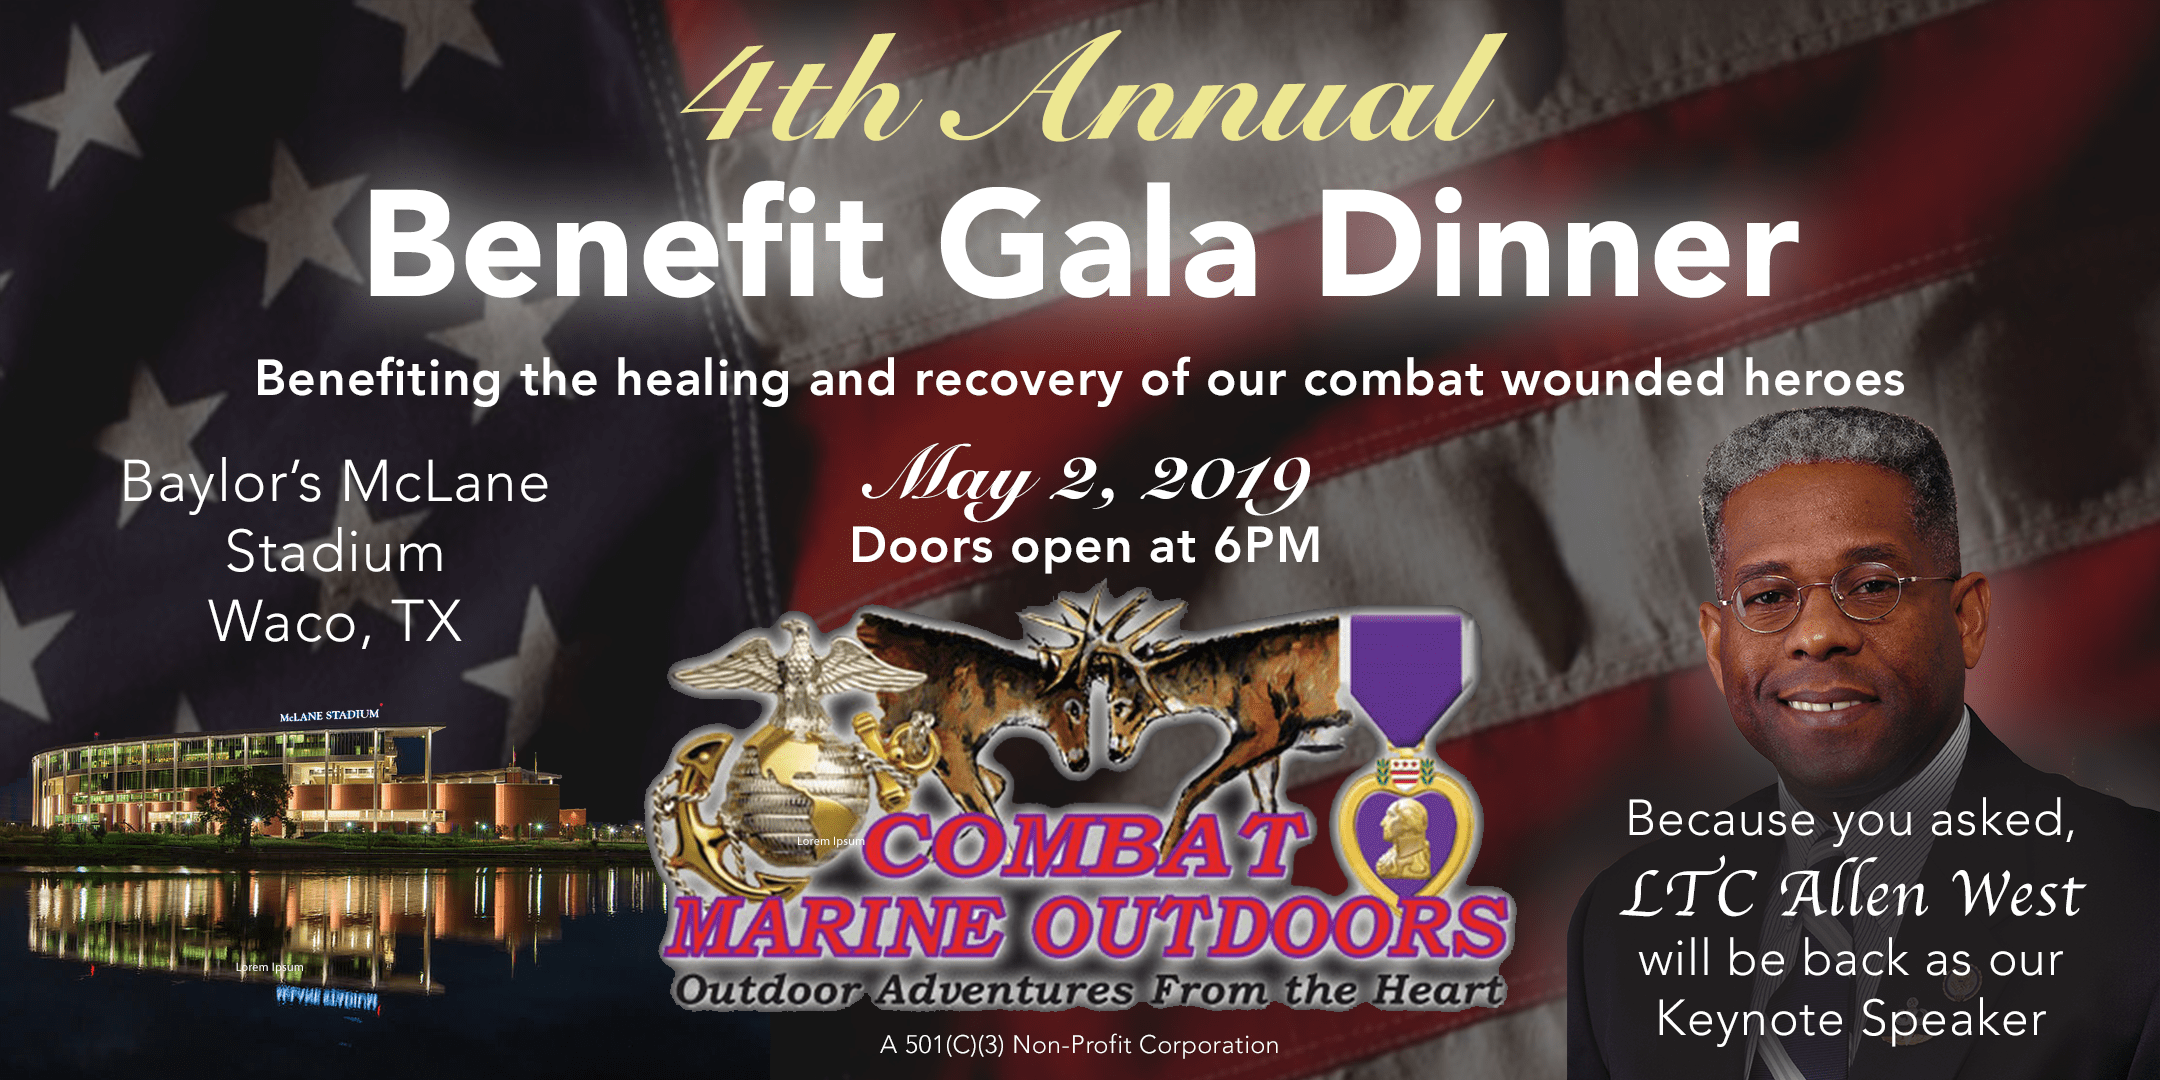 CMO 4th Annual Benefit Gala Dinner